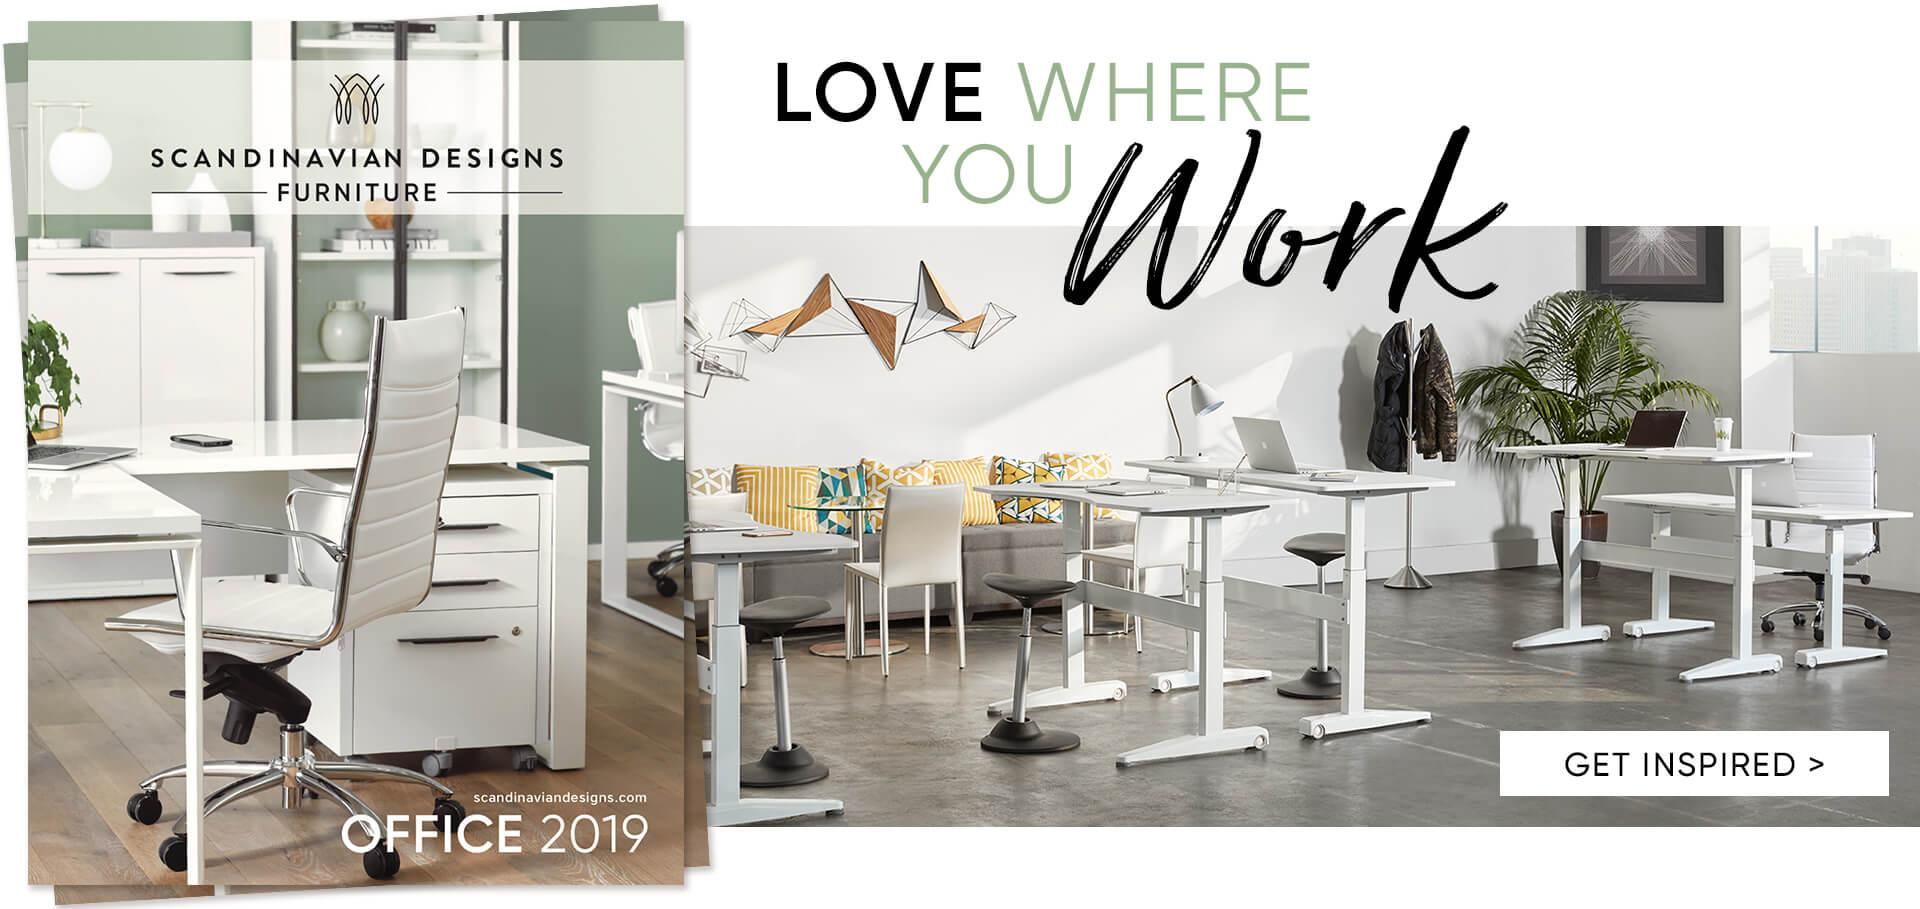 2019 scandinavian designs office catalog